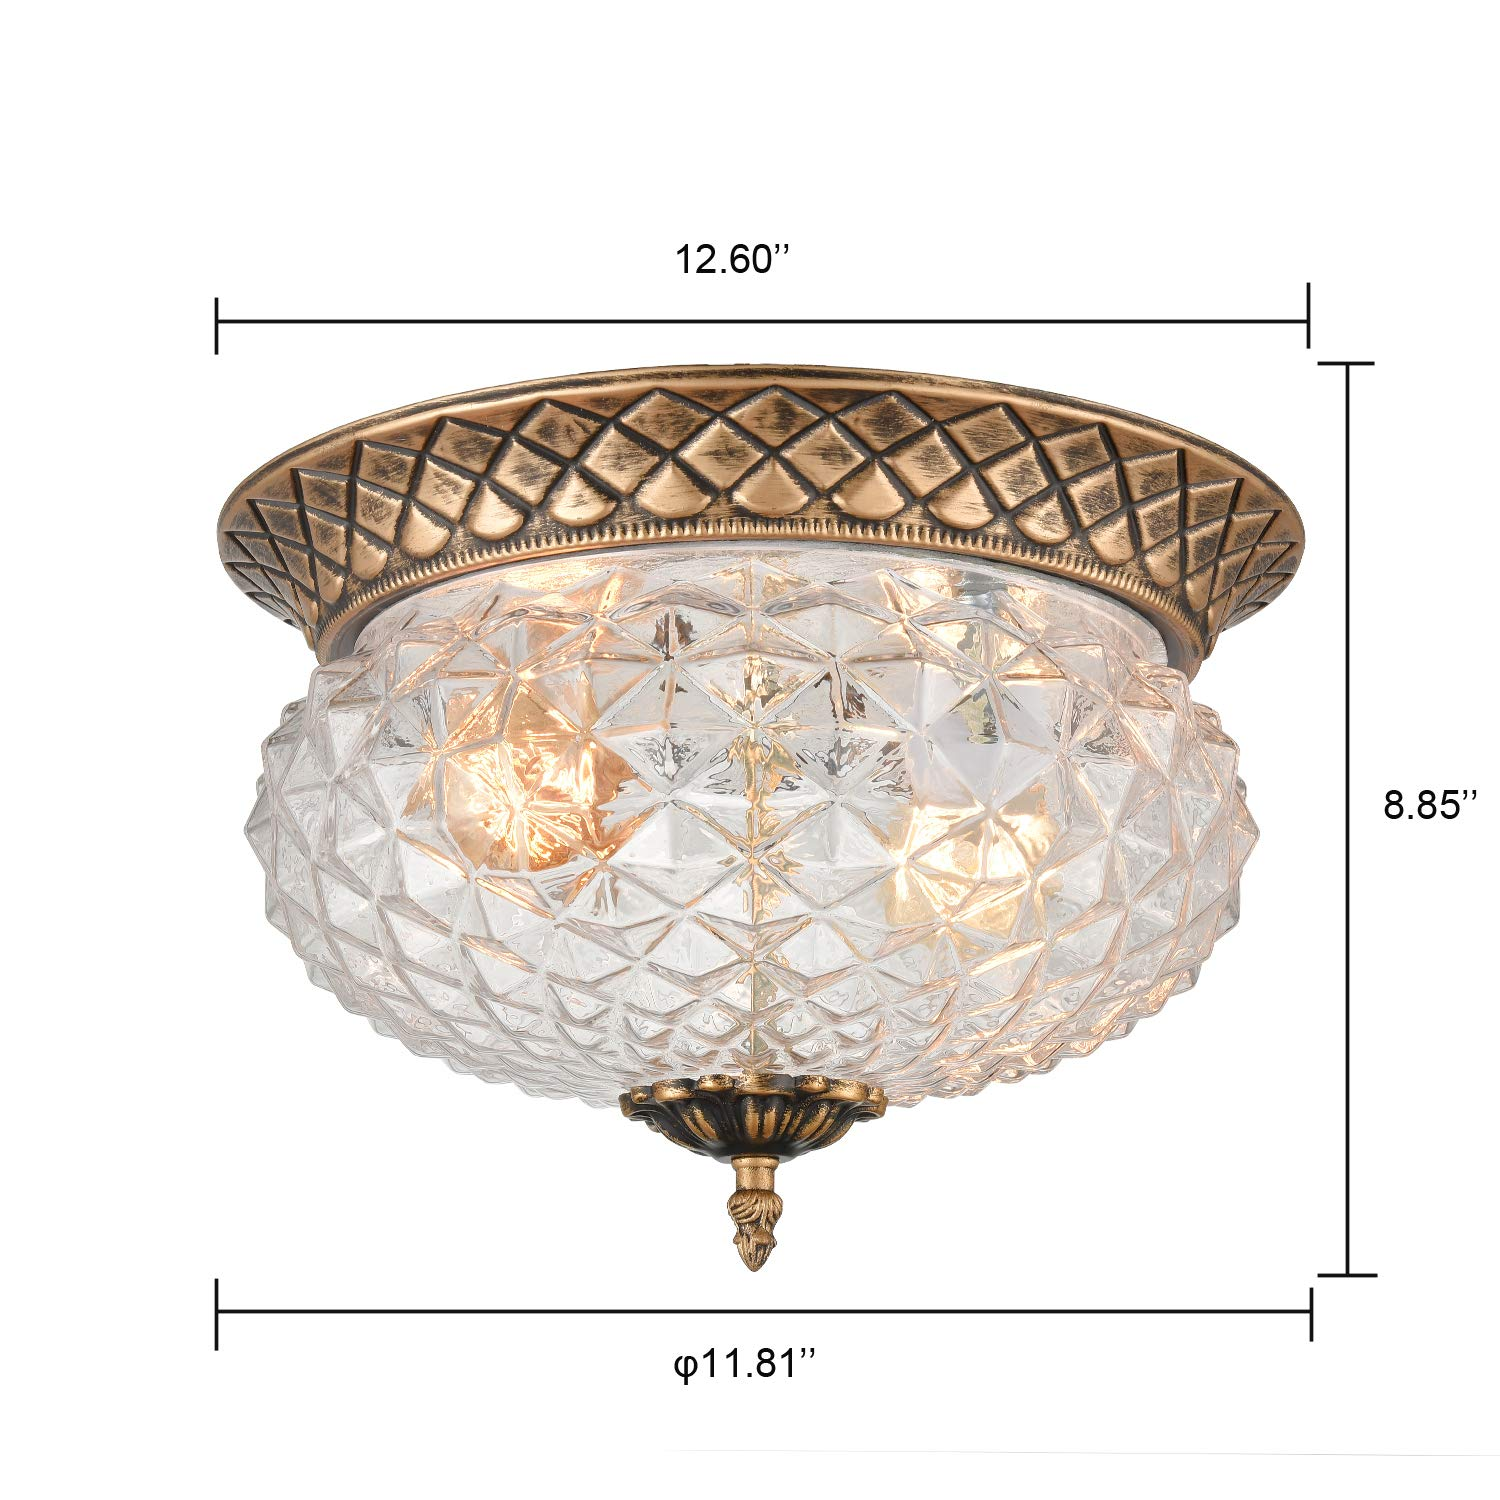 Axiland dome vintage ceiling light fixture with pineapple glass